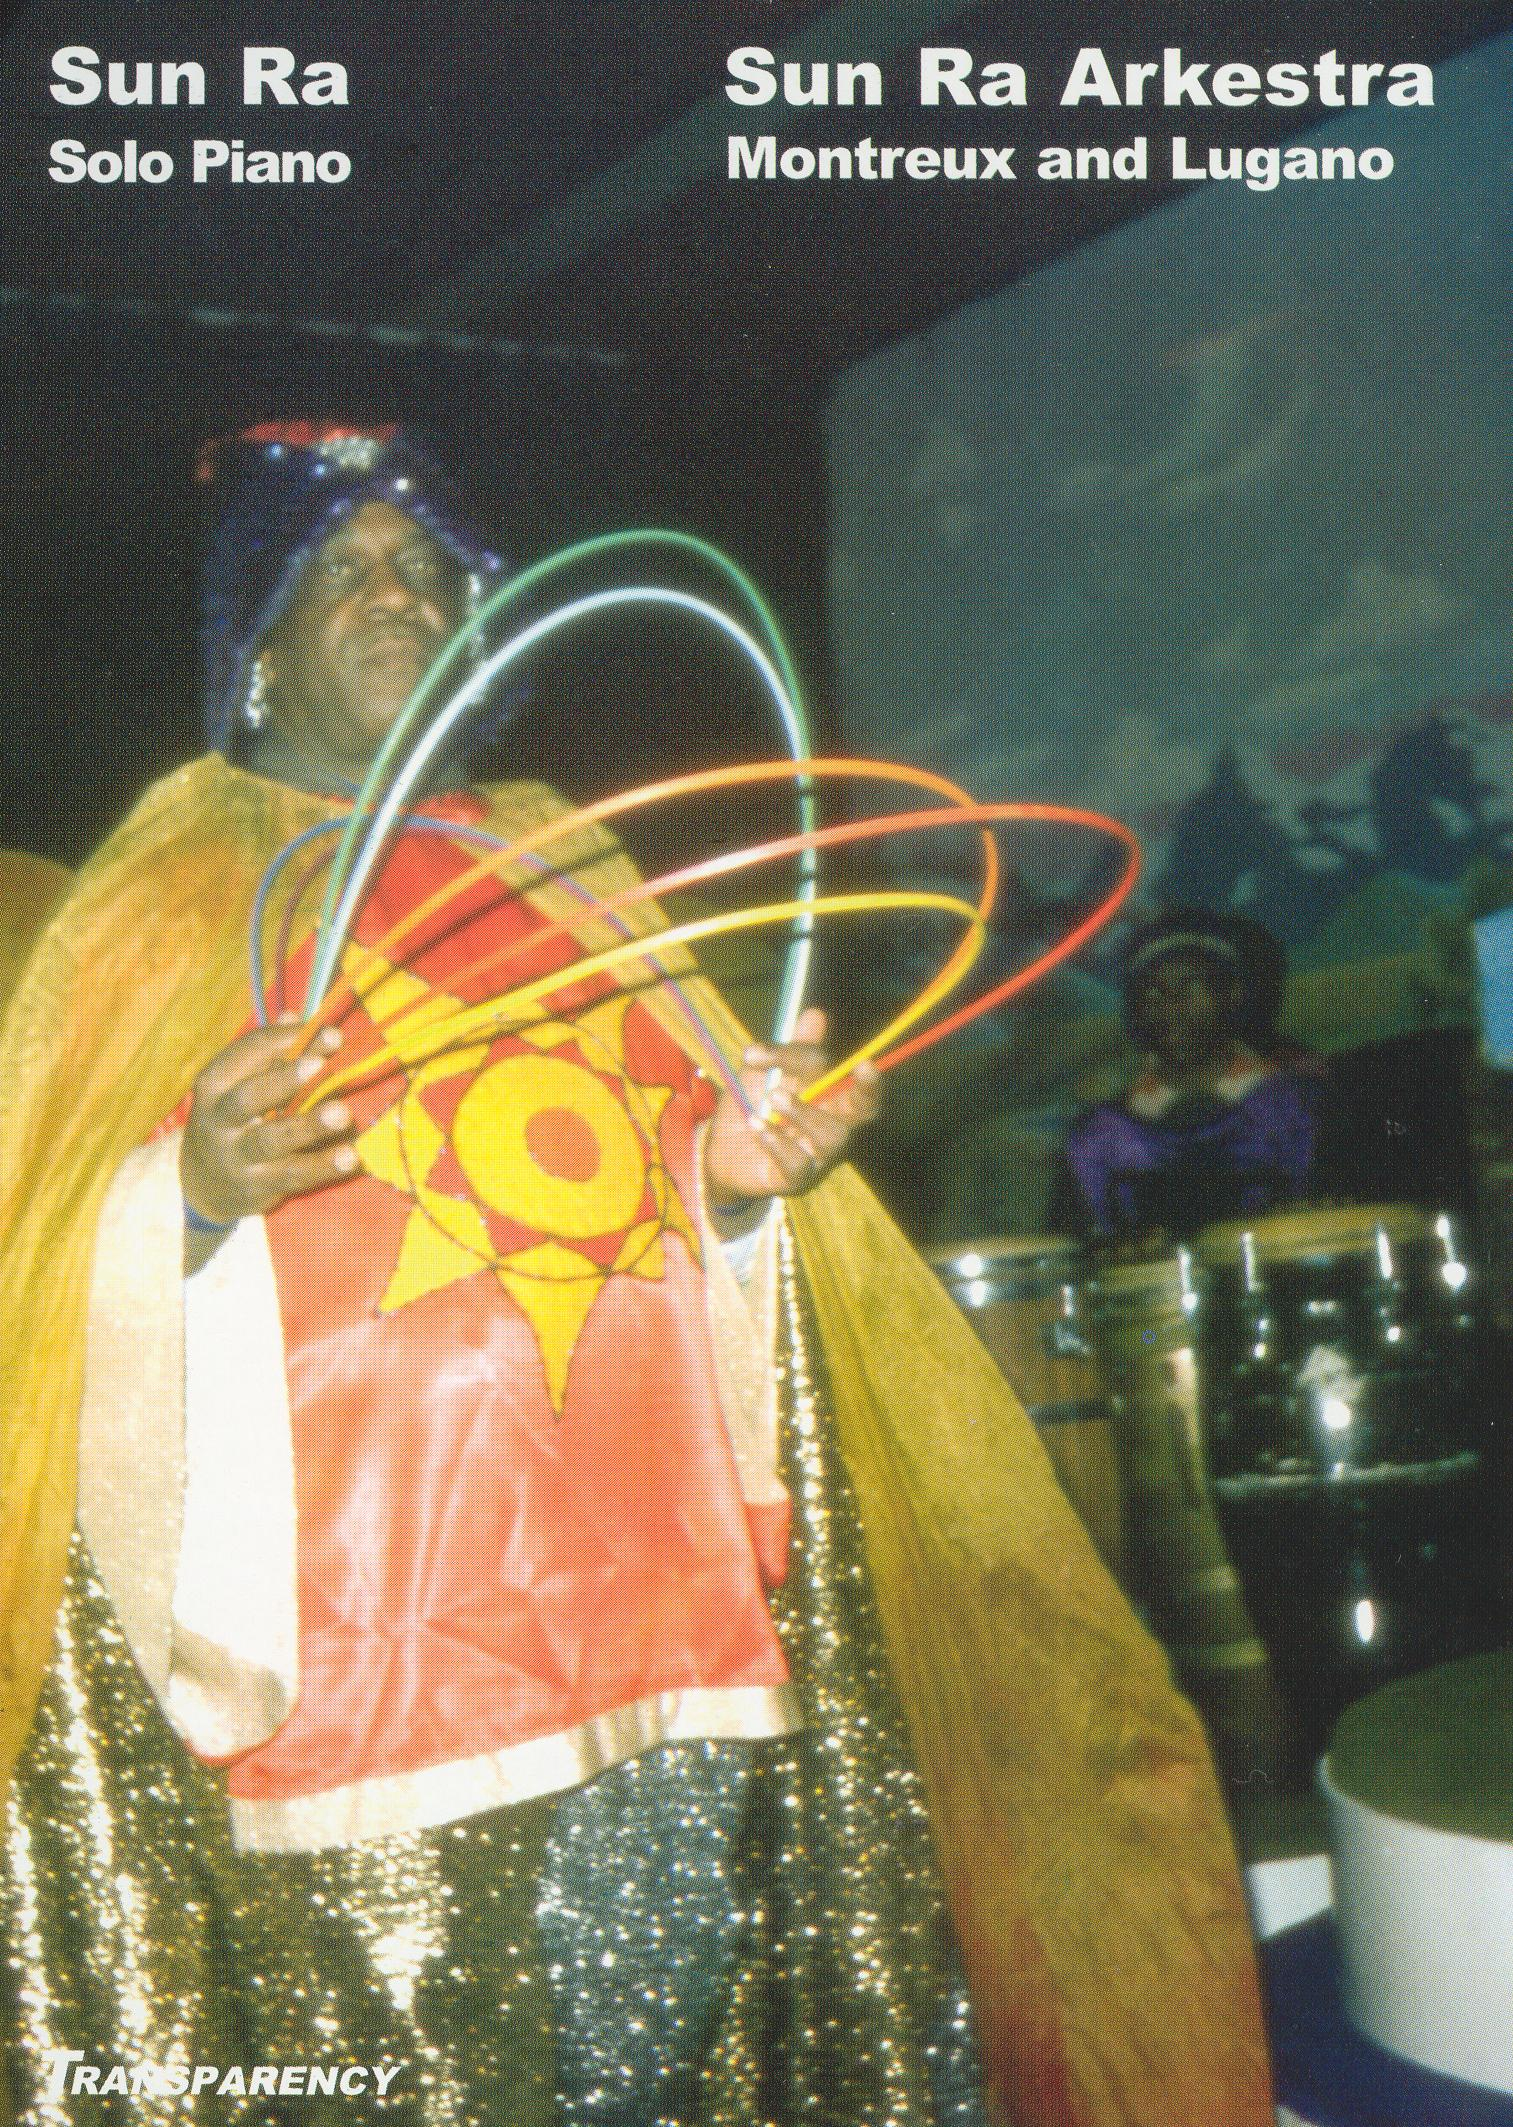 Sun Ra: Montreux and Lugano